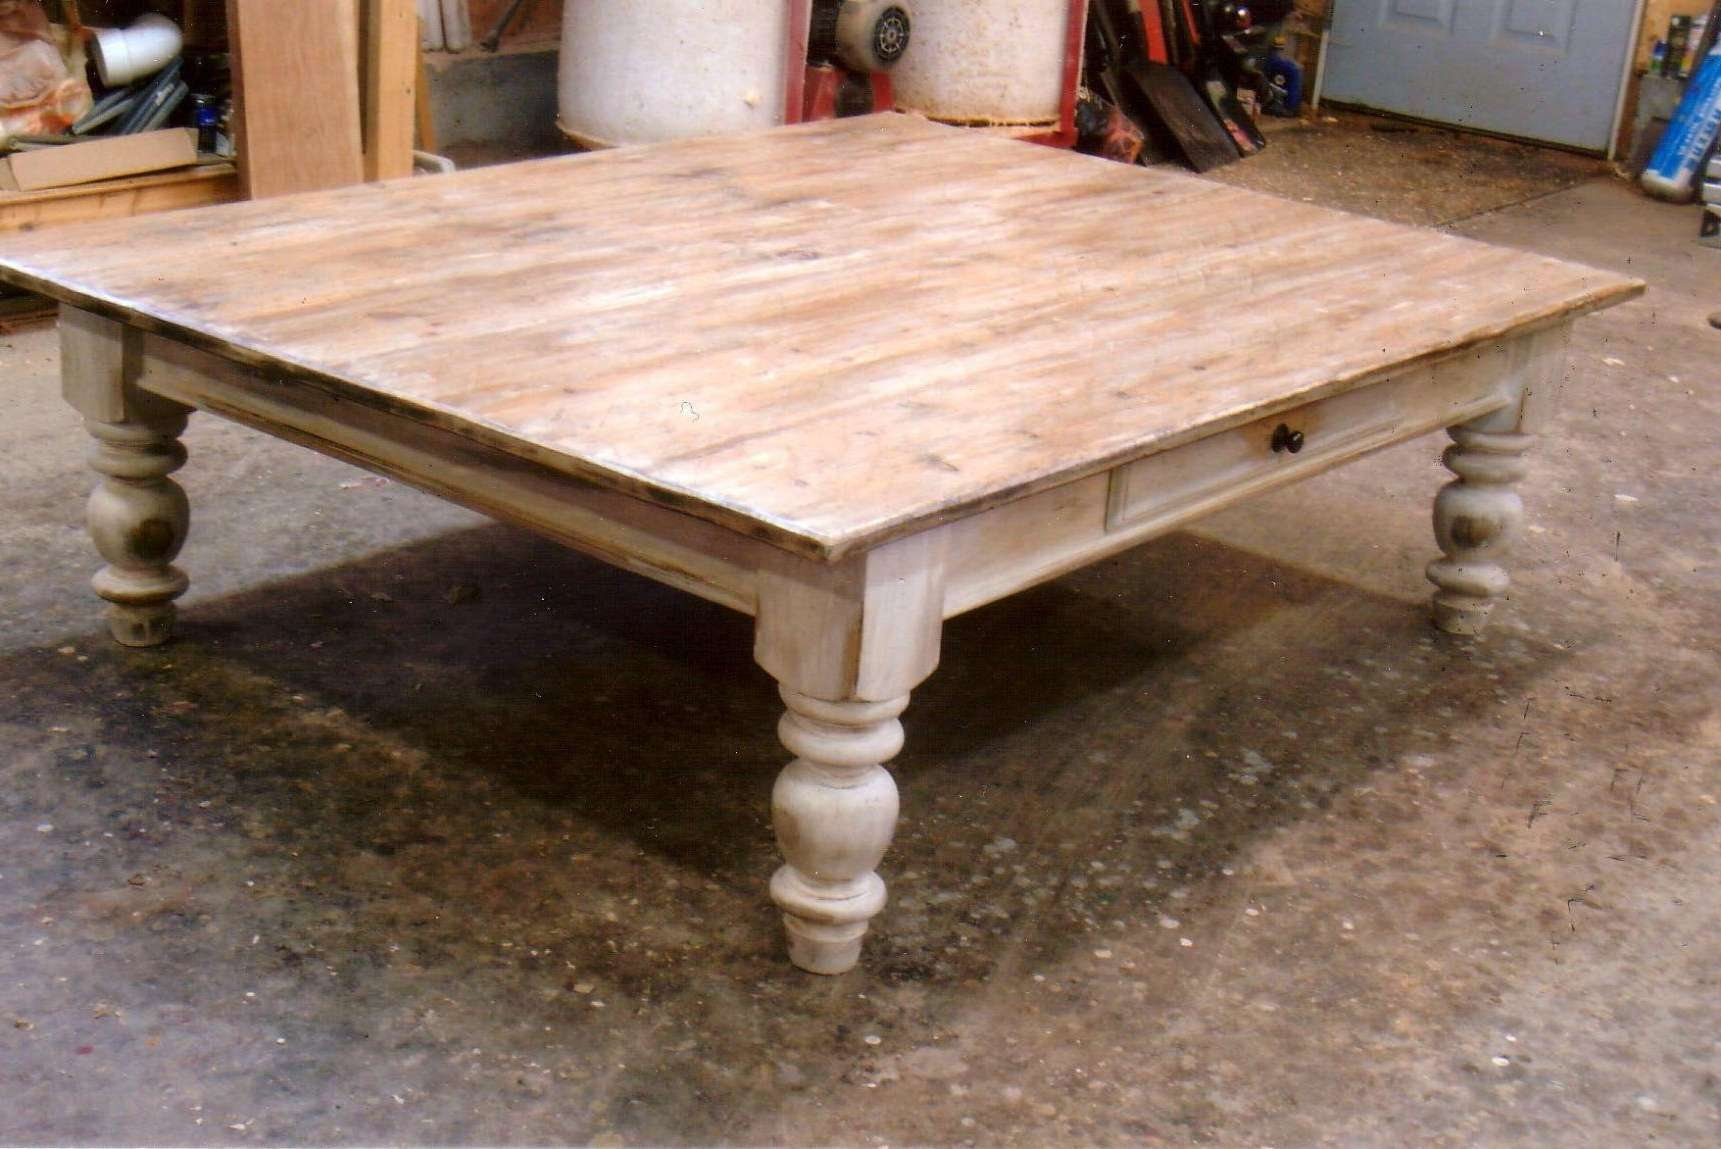 Fashionable Antique Rustic Coffee Tables Regarding Antique Farmhouse Coffee Table : Bed And Shower – Rustic Farmhouse (View 11 of 20)